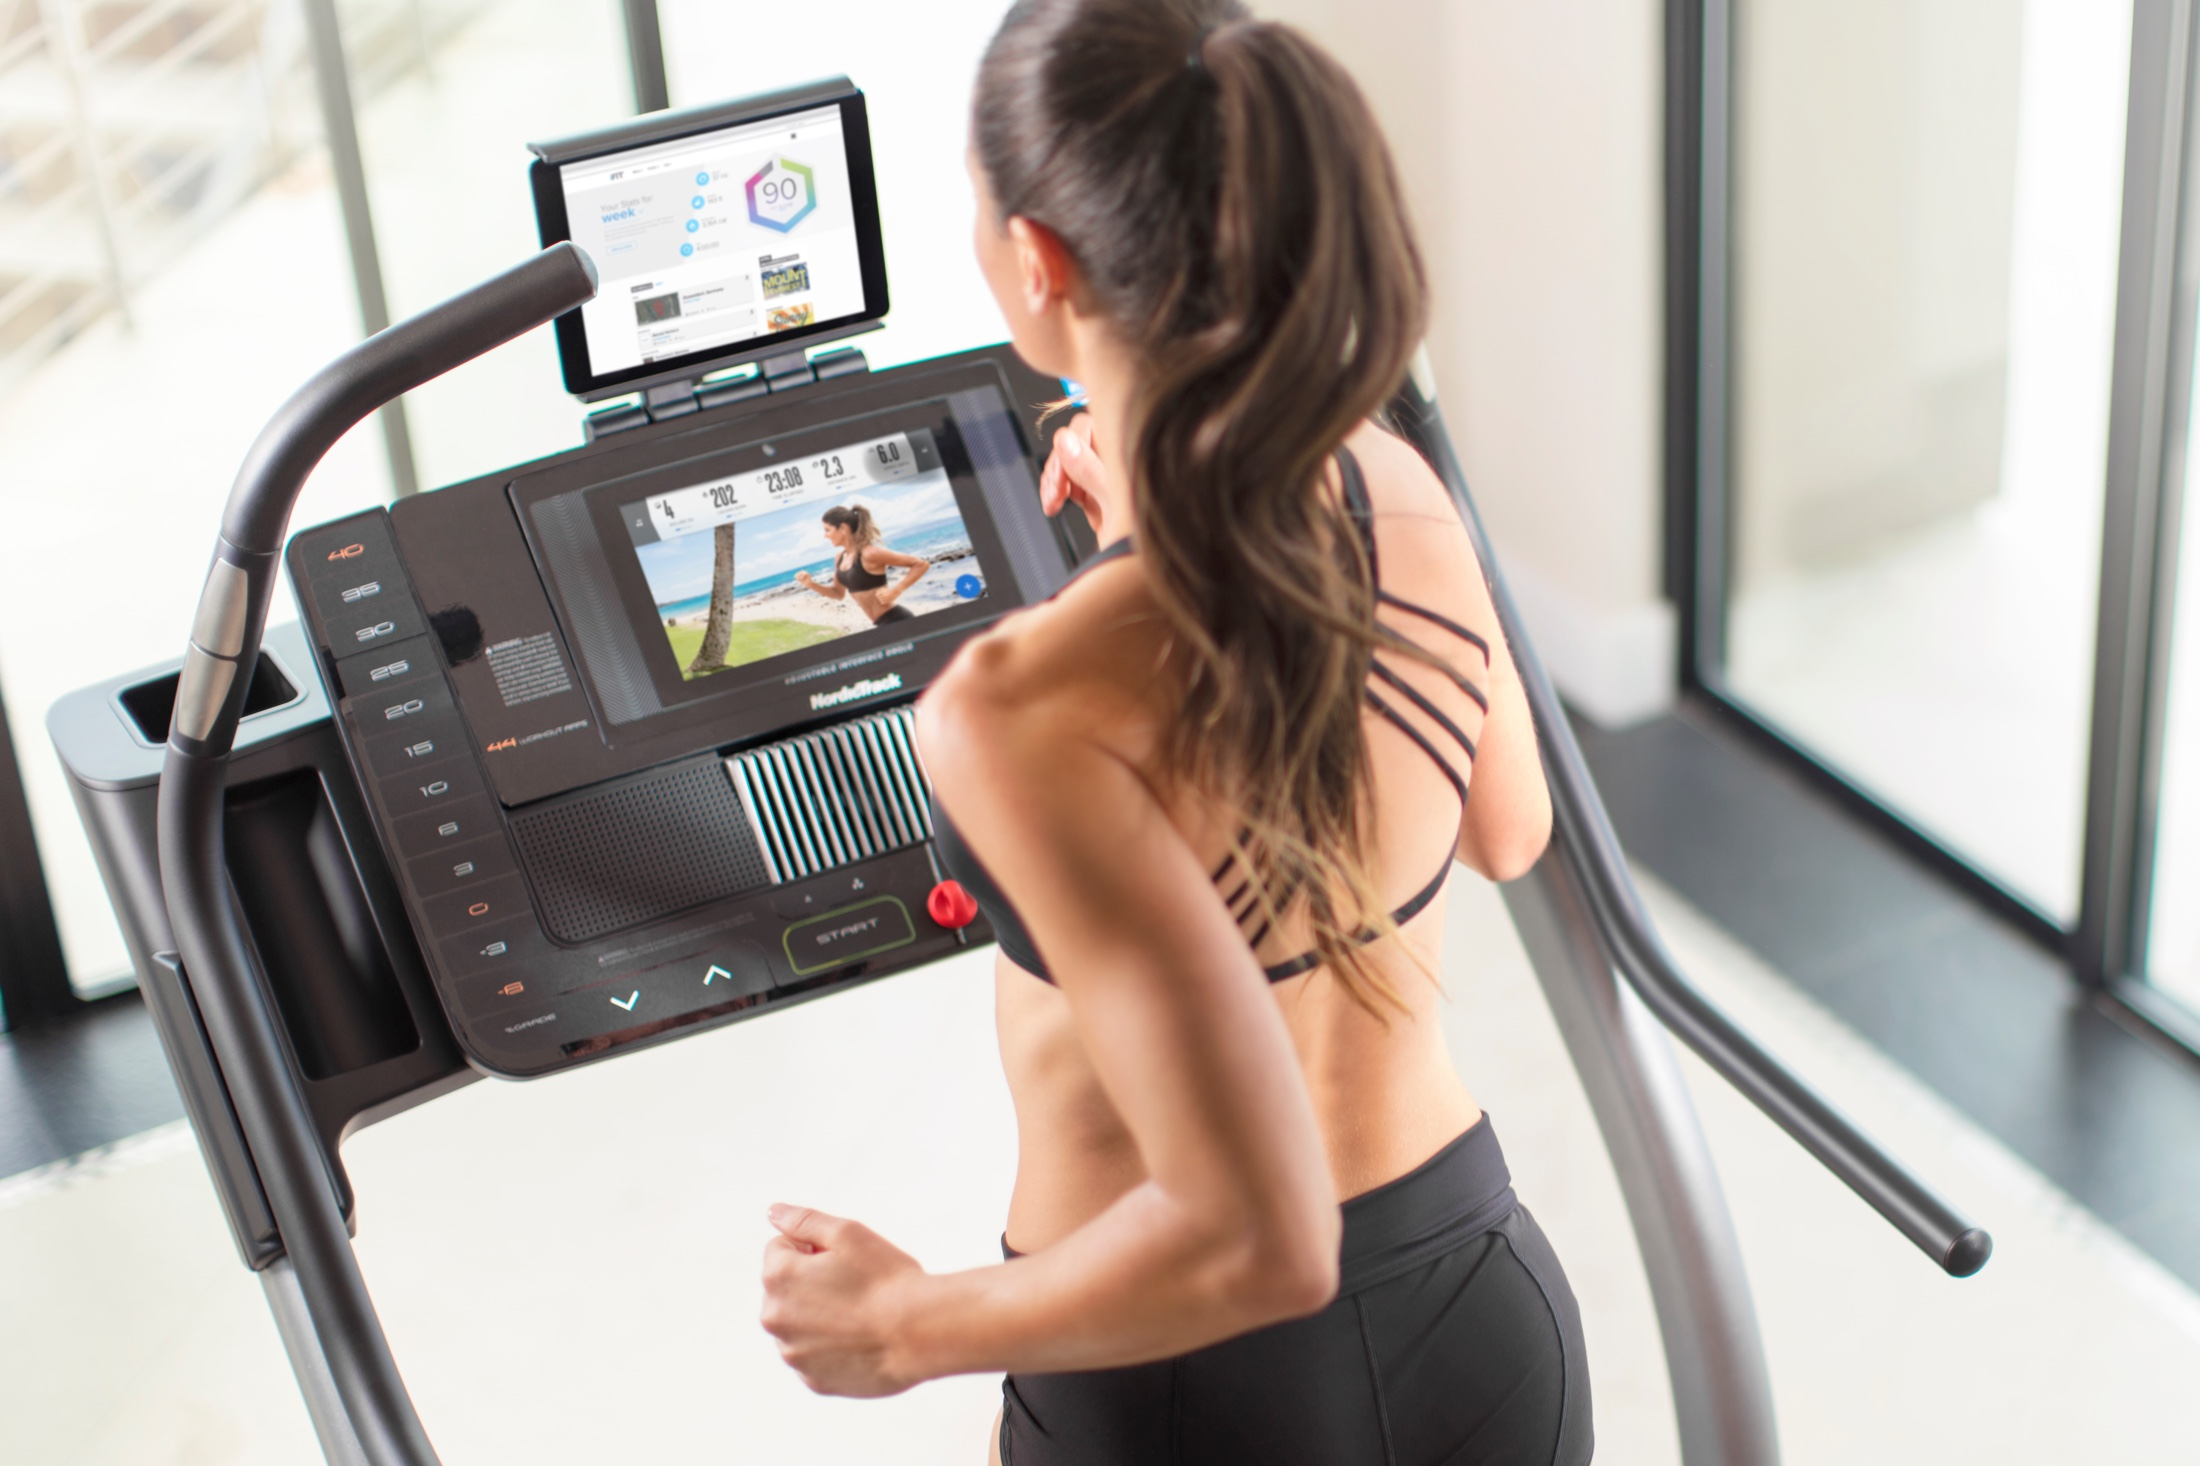 NordicTrack X11i Incline Trainer gallery image 2